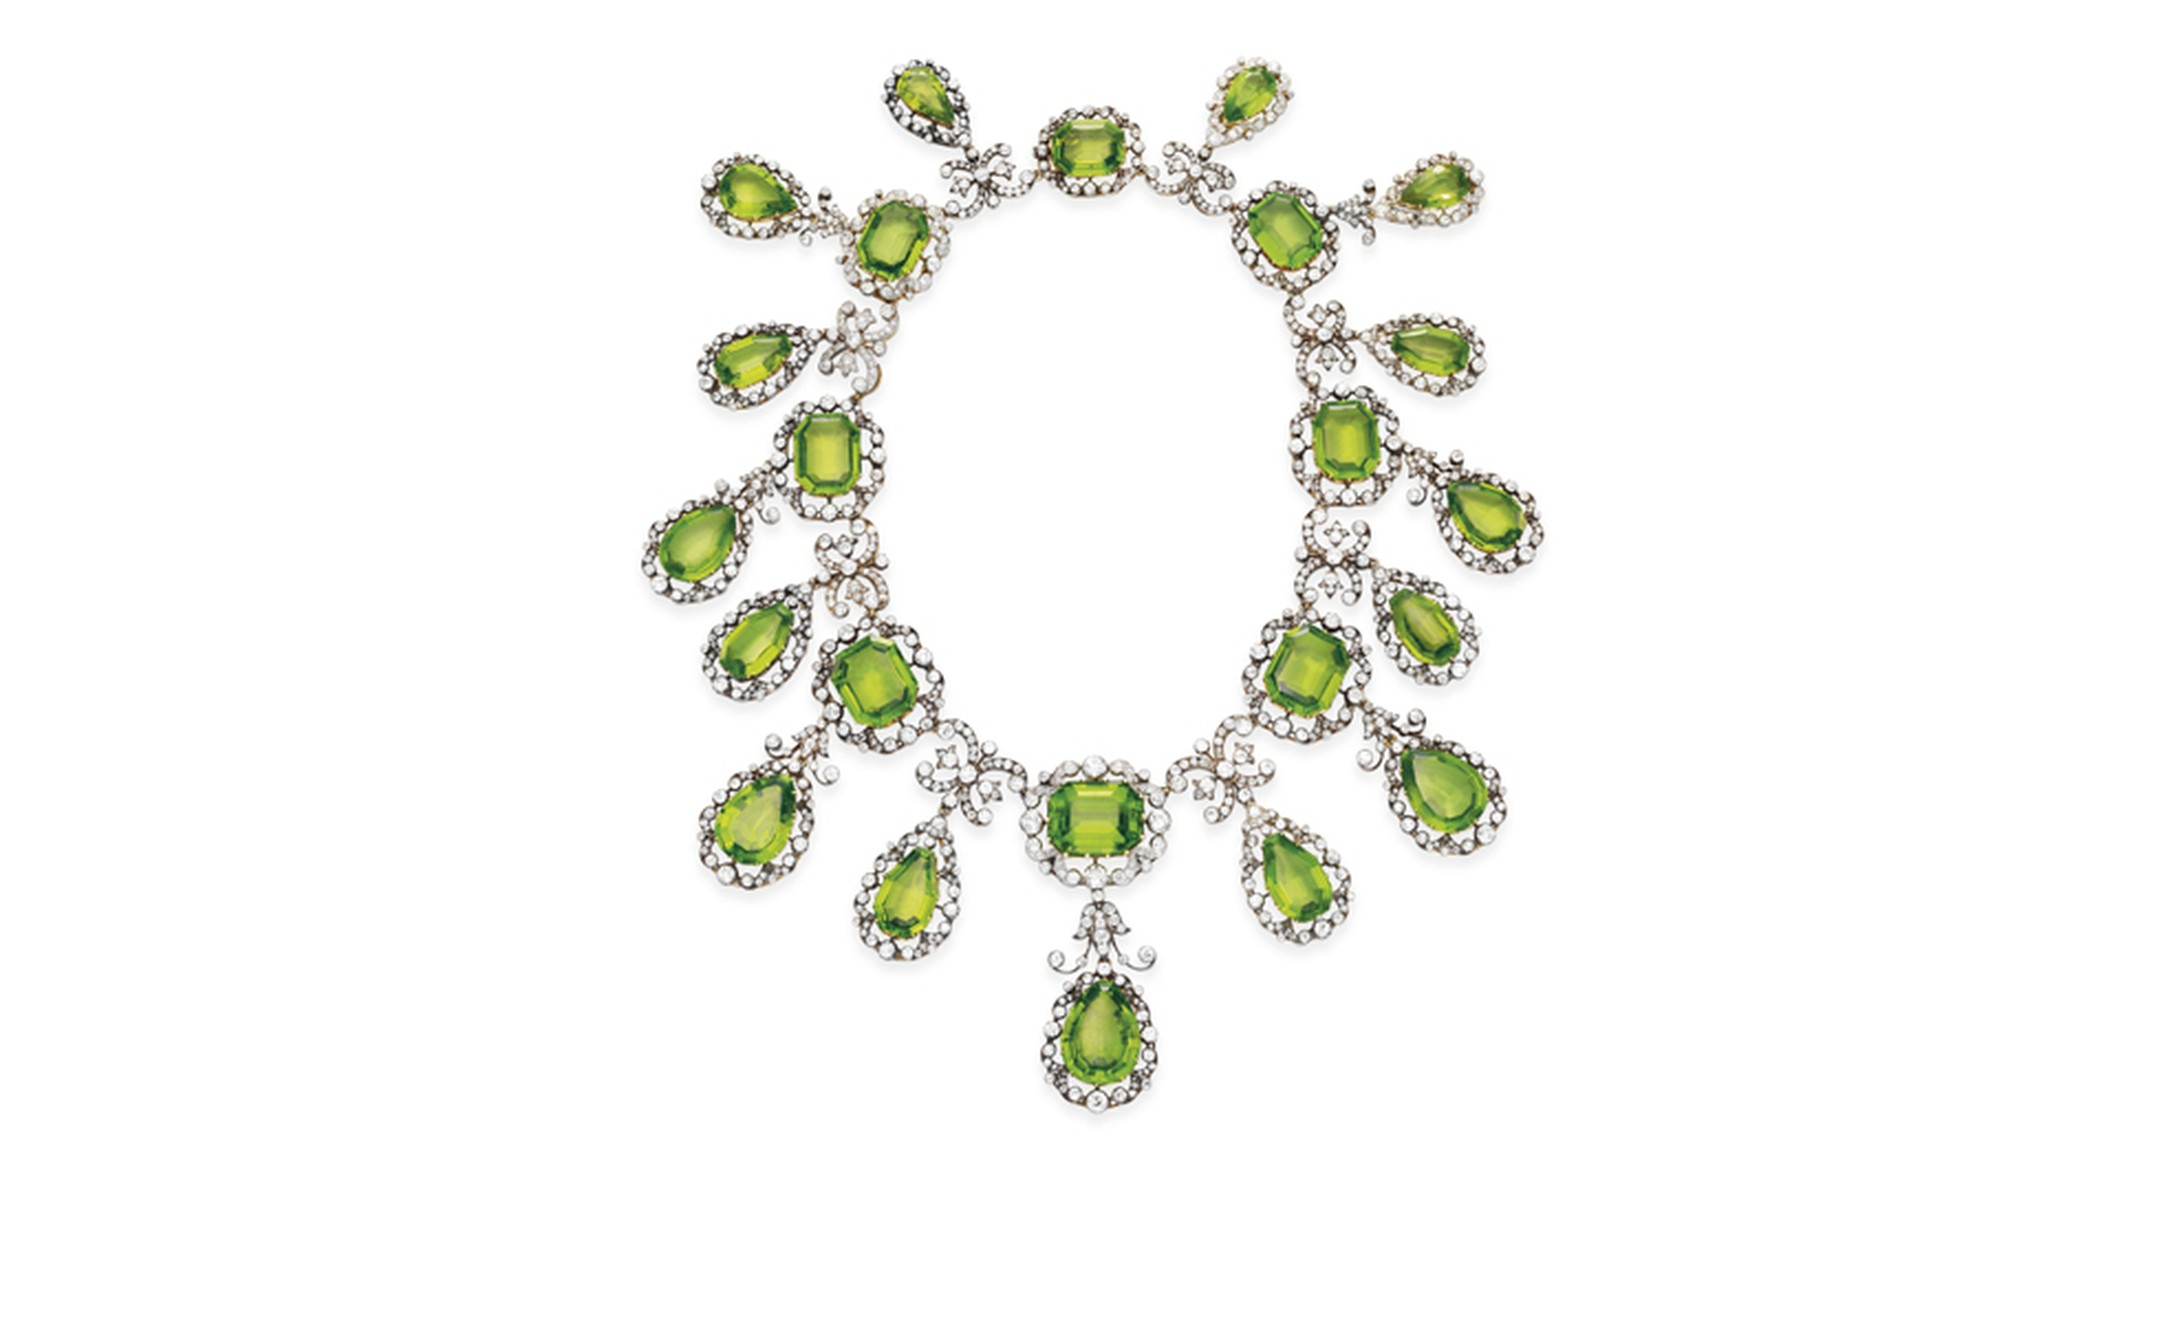 Lot 227, AN ANTIQUE PERIDOT AND DIAMOND NECKLACE. Estimate $250,000 - 350,000 U.S. dollars. SOLD FOR $302,500. Christie's Images Ltd. 2010